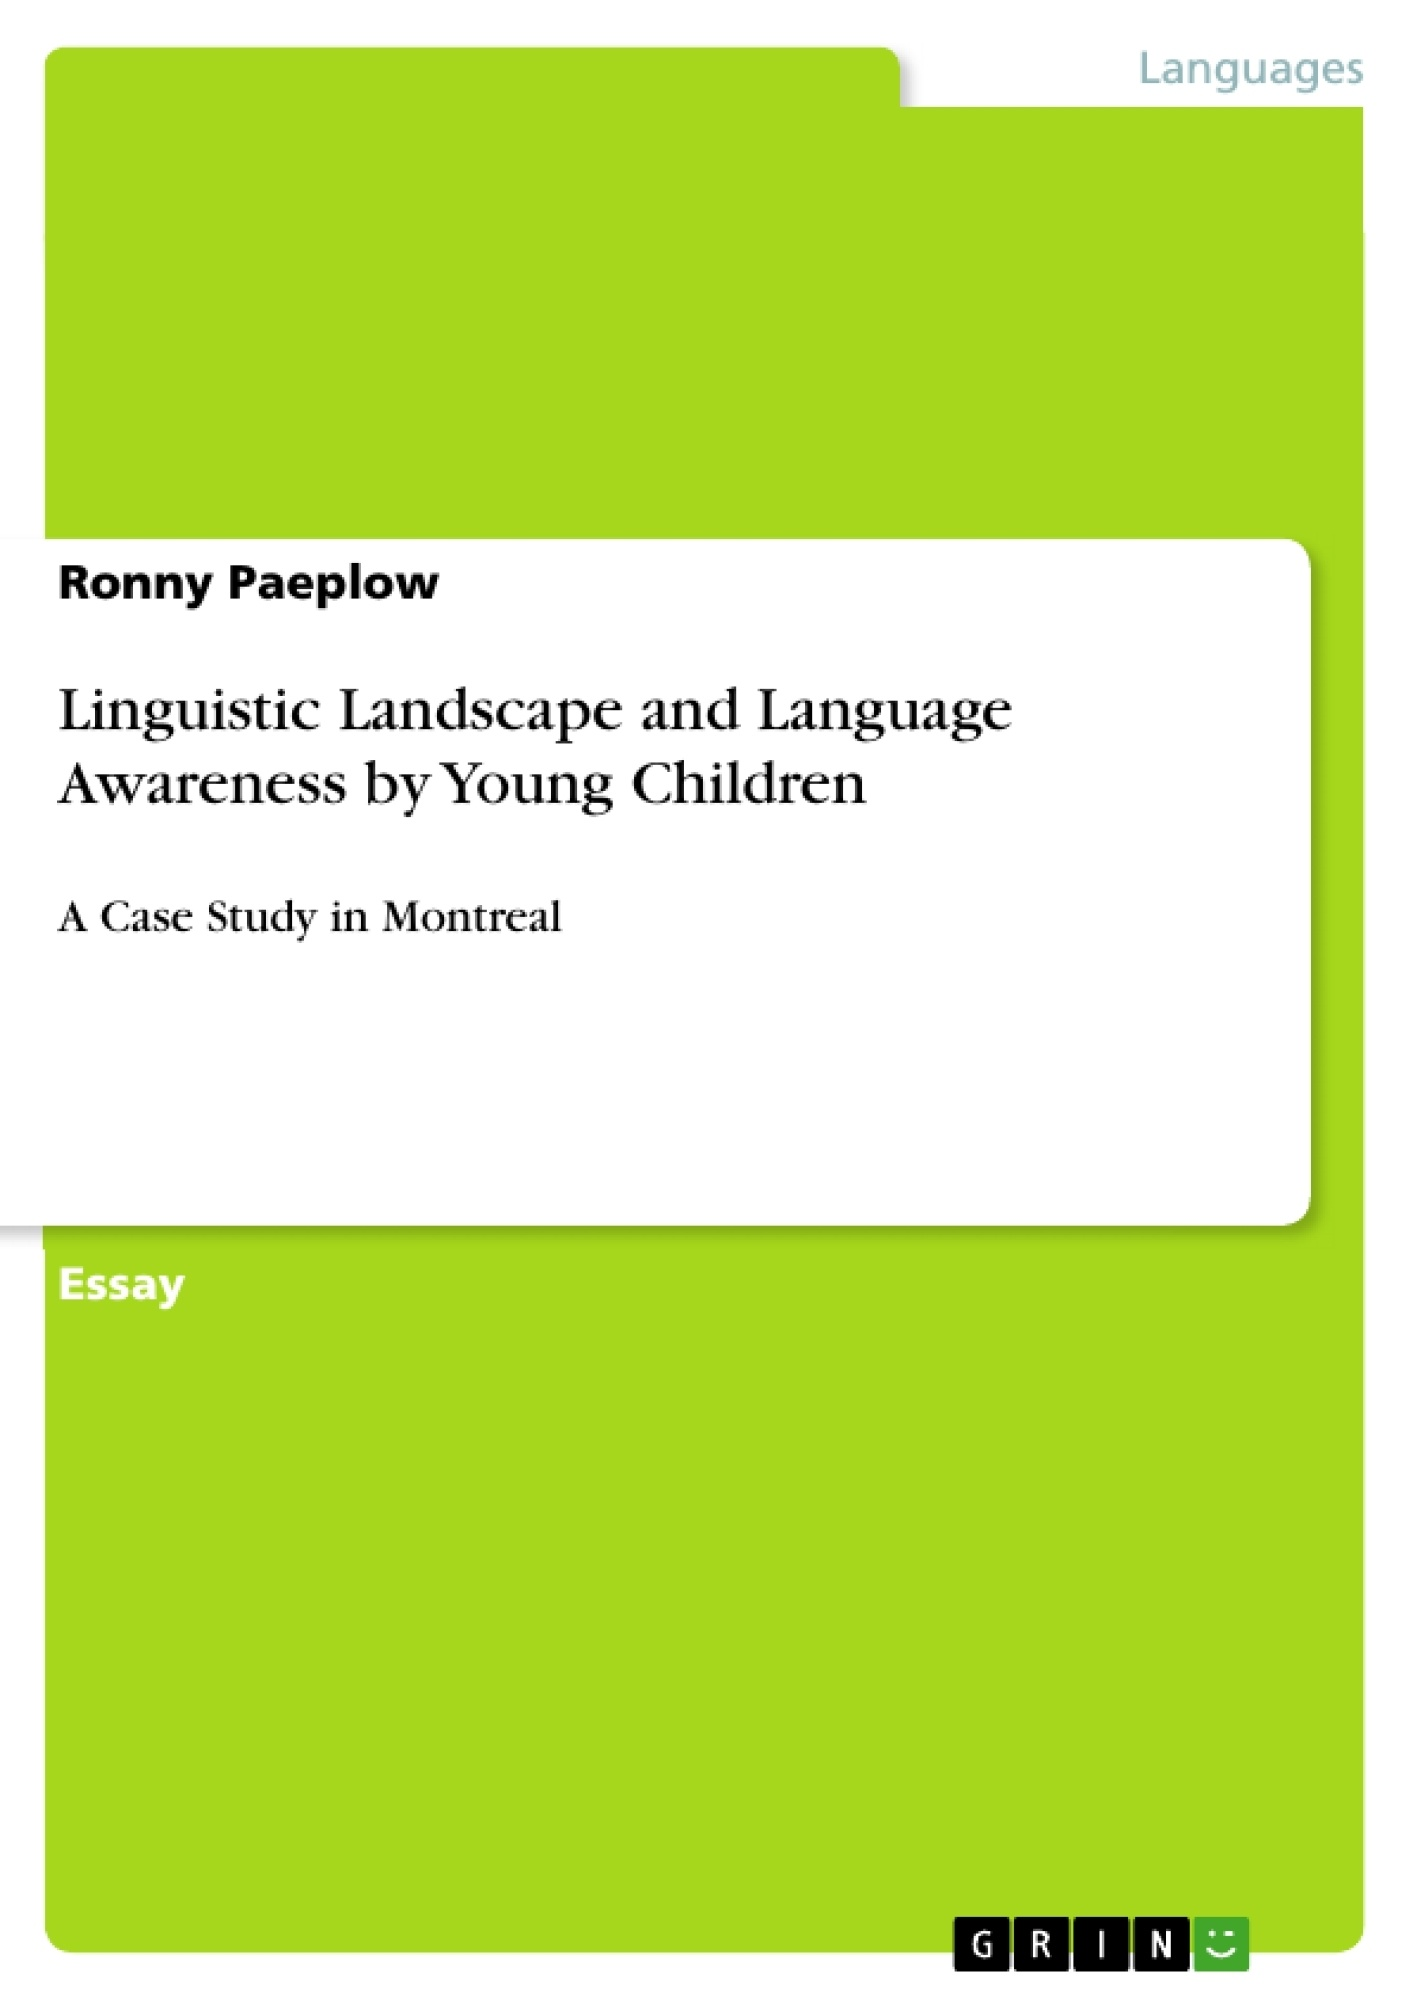 Title: Linguistic Landscape and Language Awareness by Young Children